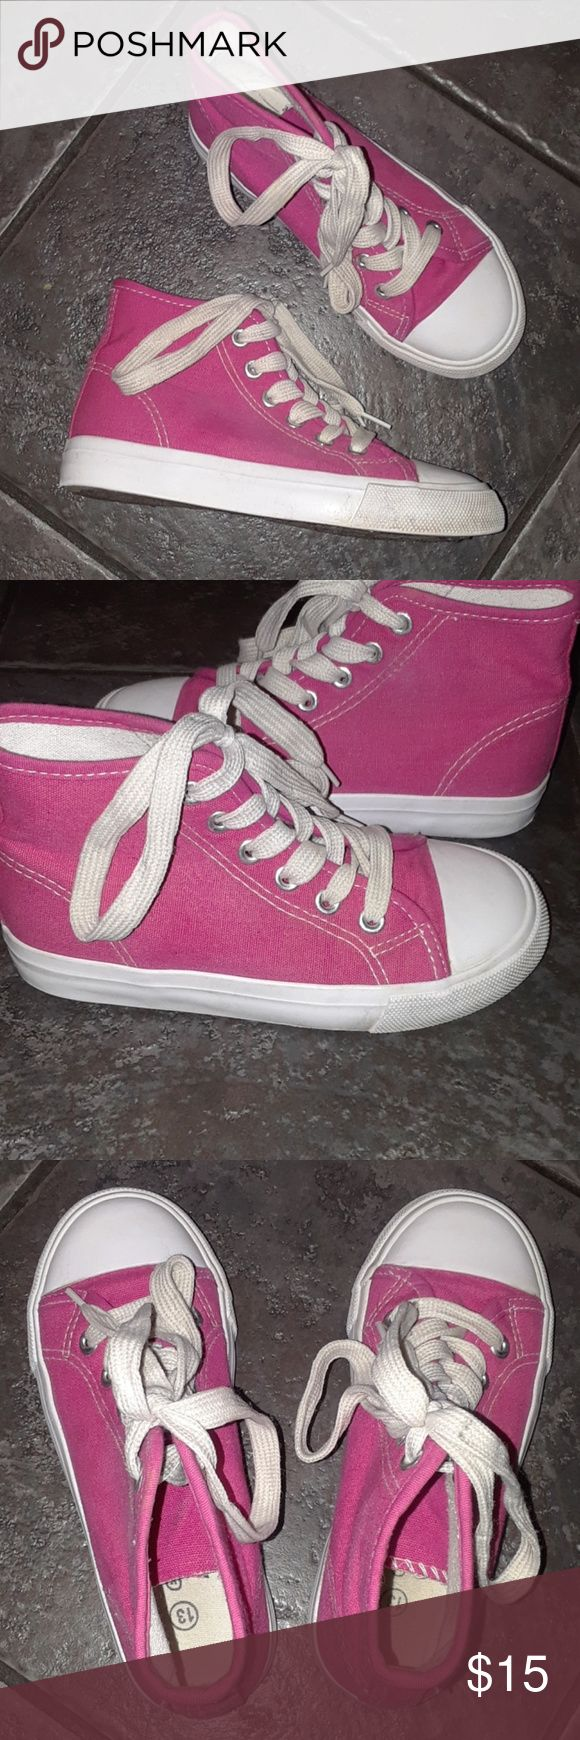 Little Girls size 13 CONVERSE Like sneakers pink Smoke Free and clean home!  Bundle to save on shipping! Many girls clothes and shoes available to make bundles!  Little Girls size 13 pink high tops CONVERSE Like sneakers. Note: they are NOT CONVERSE.  Brand is EXTRMEMELY ME.  Gentle used condition. Extremely Me Shoes Sneakers